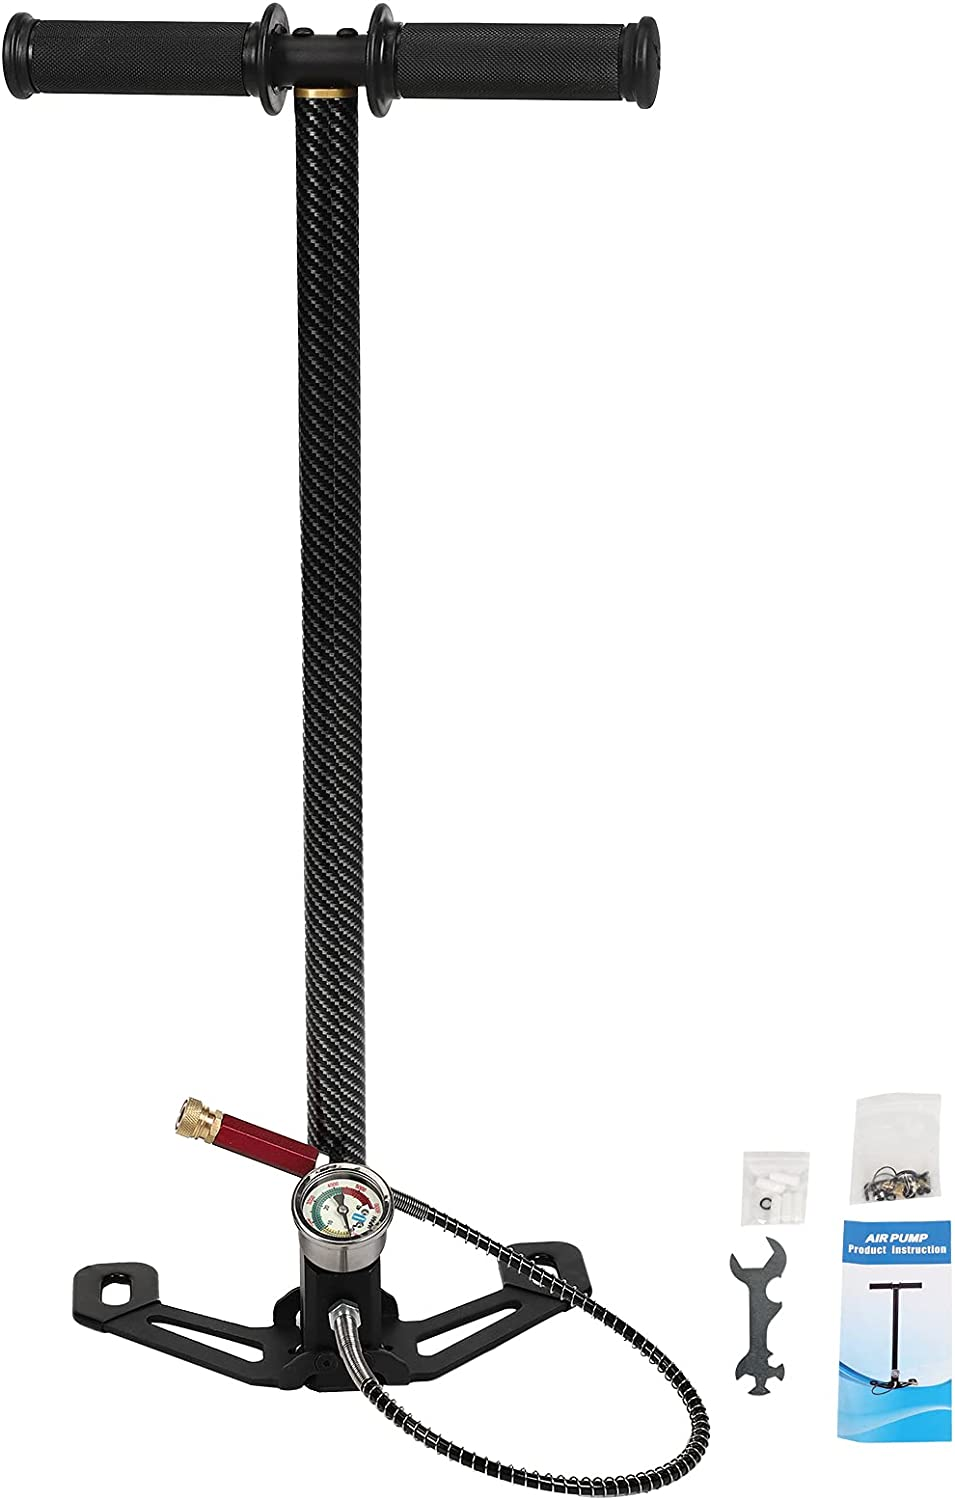 Eulbevoli 5 ☆ popular High Pressure Hand Pump Stainless Limited Special Price One Steel